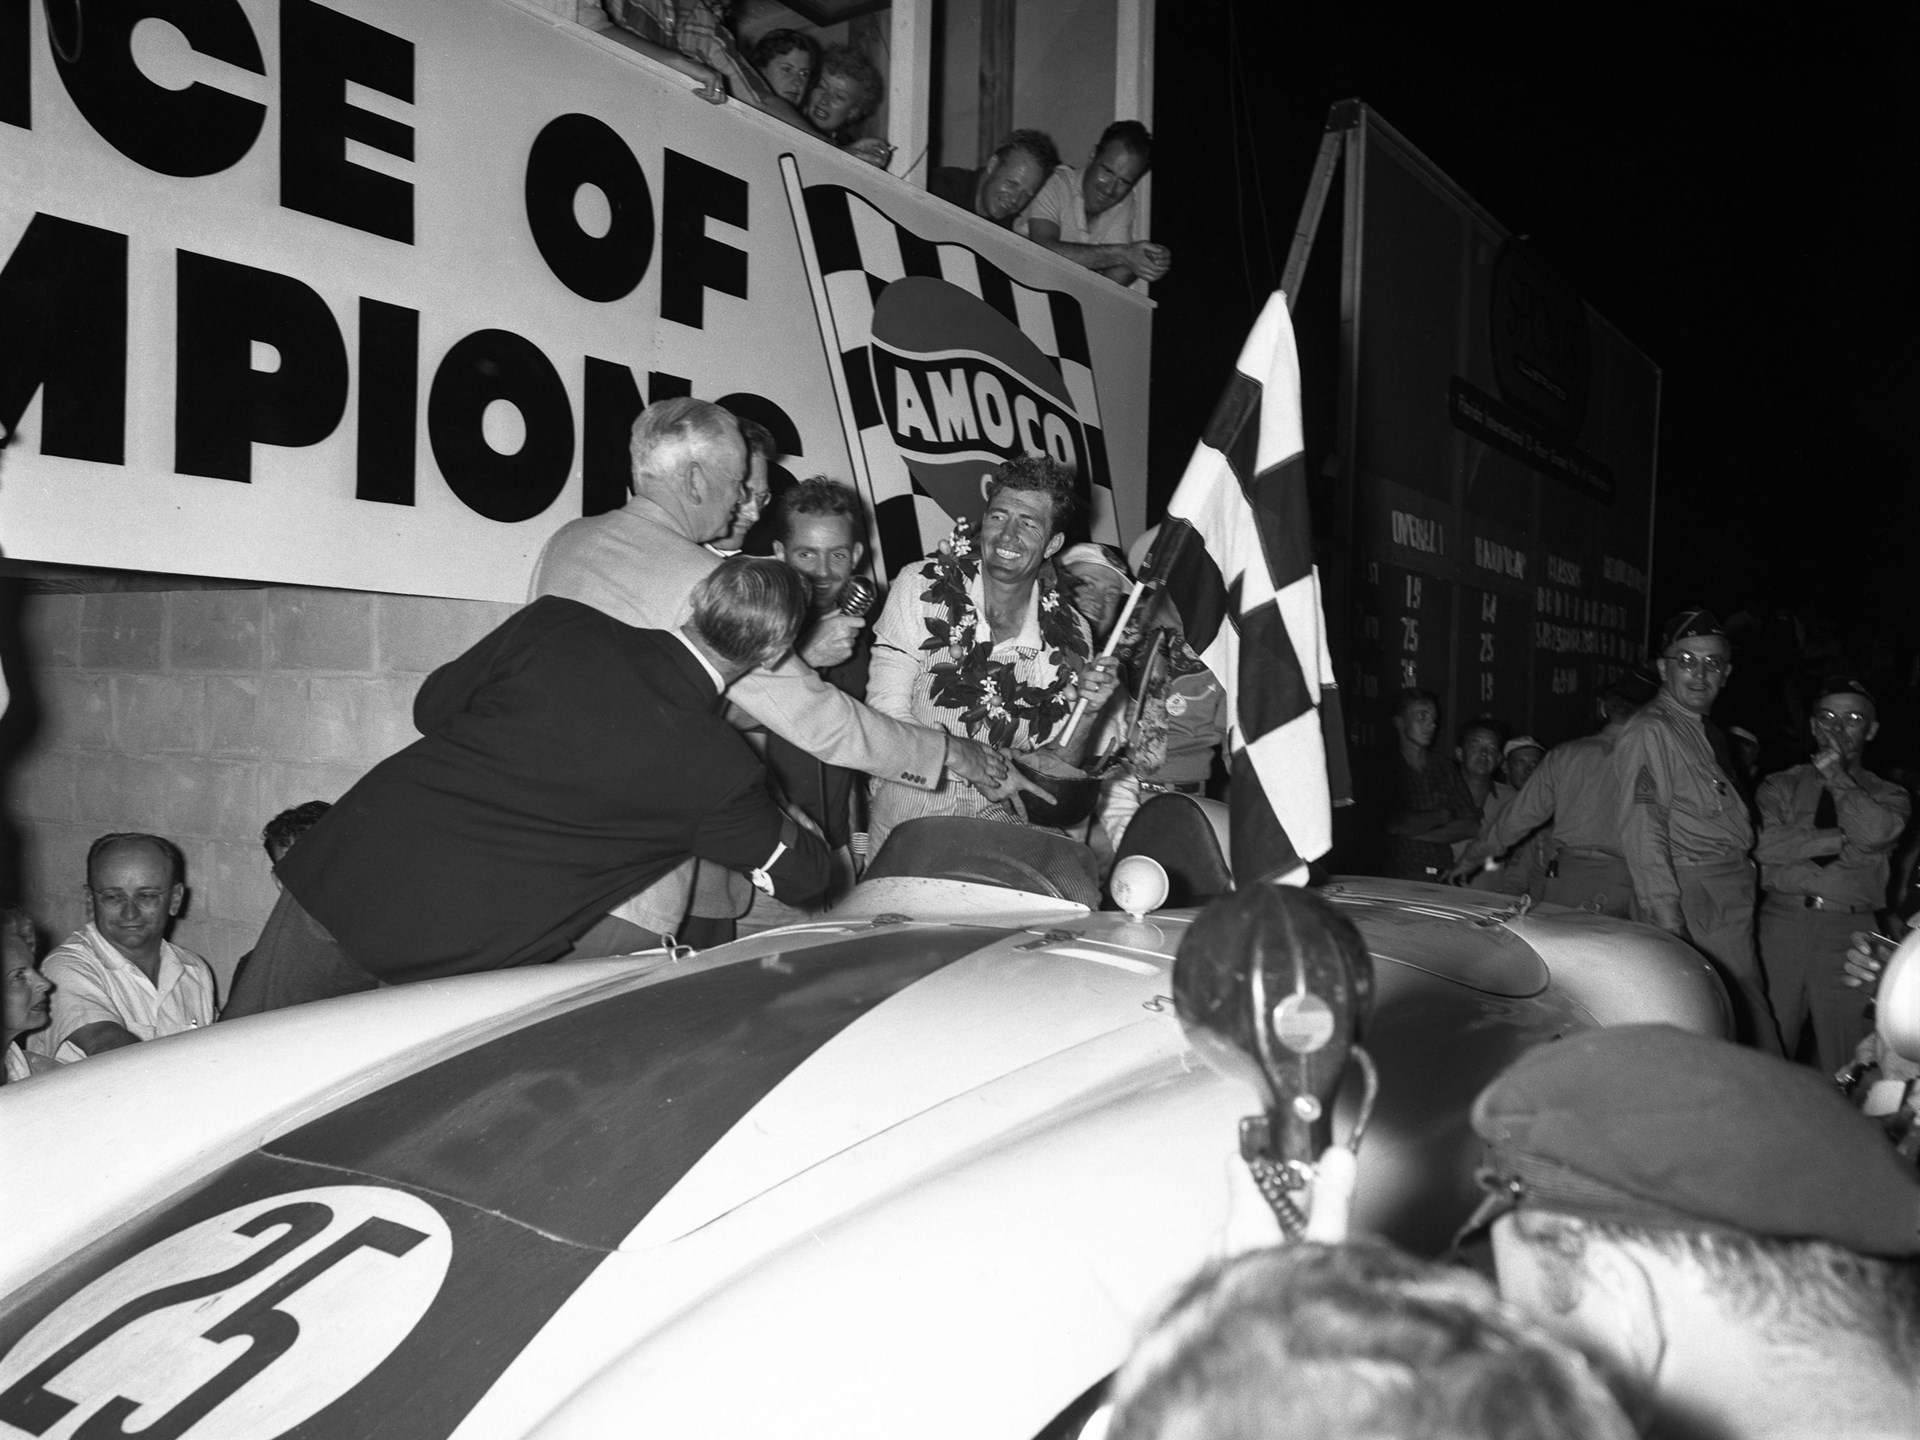 Carroll Shelby and Phil Hill celebrate their perceived victory in the 1955 12 Hours of Sebring before their result was overturned, leaving them in second place overall.